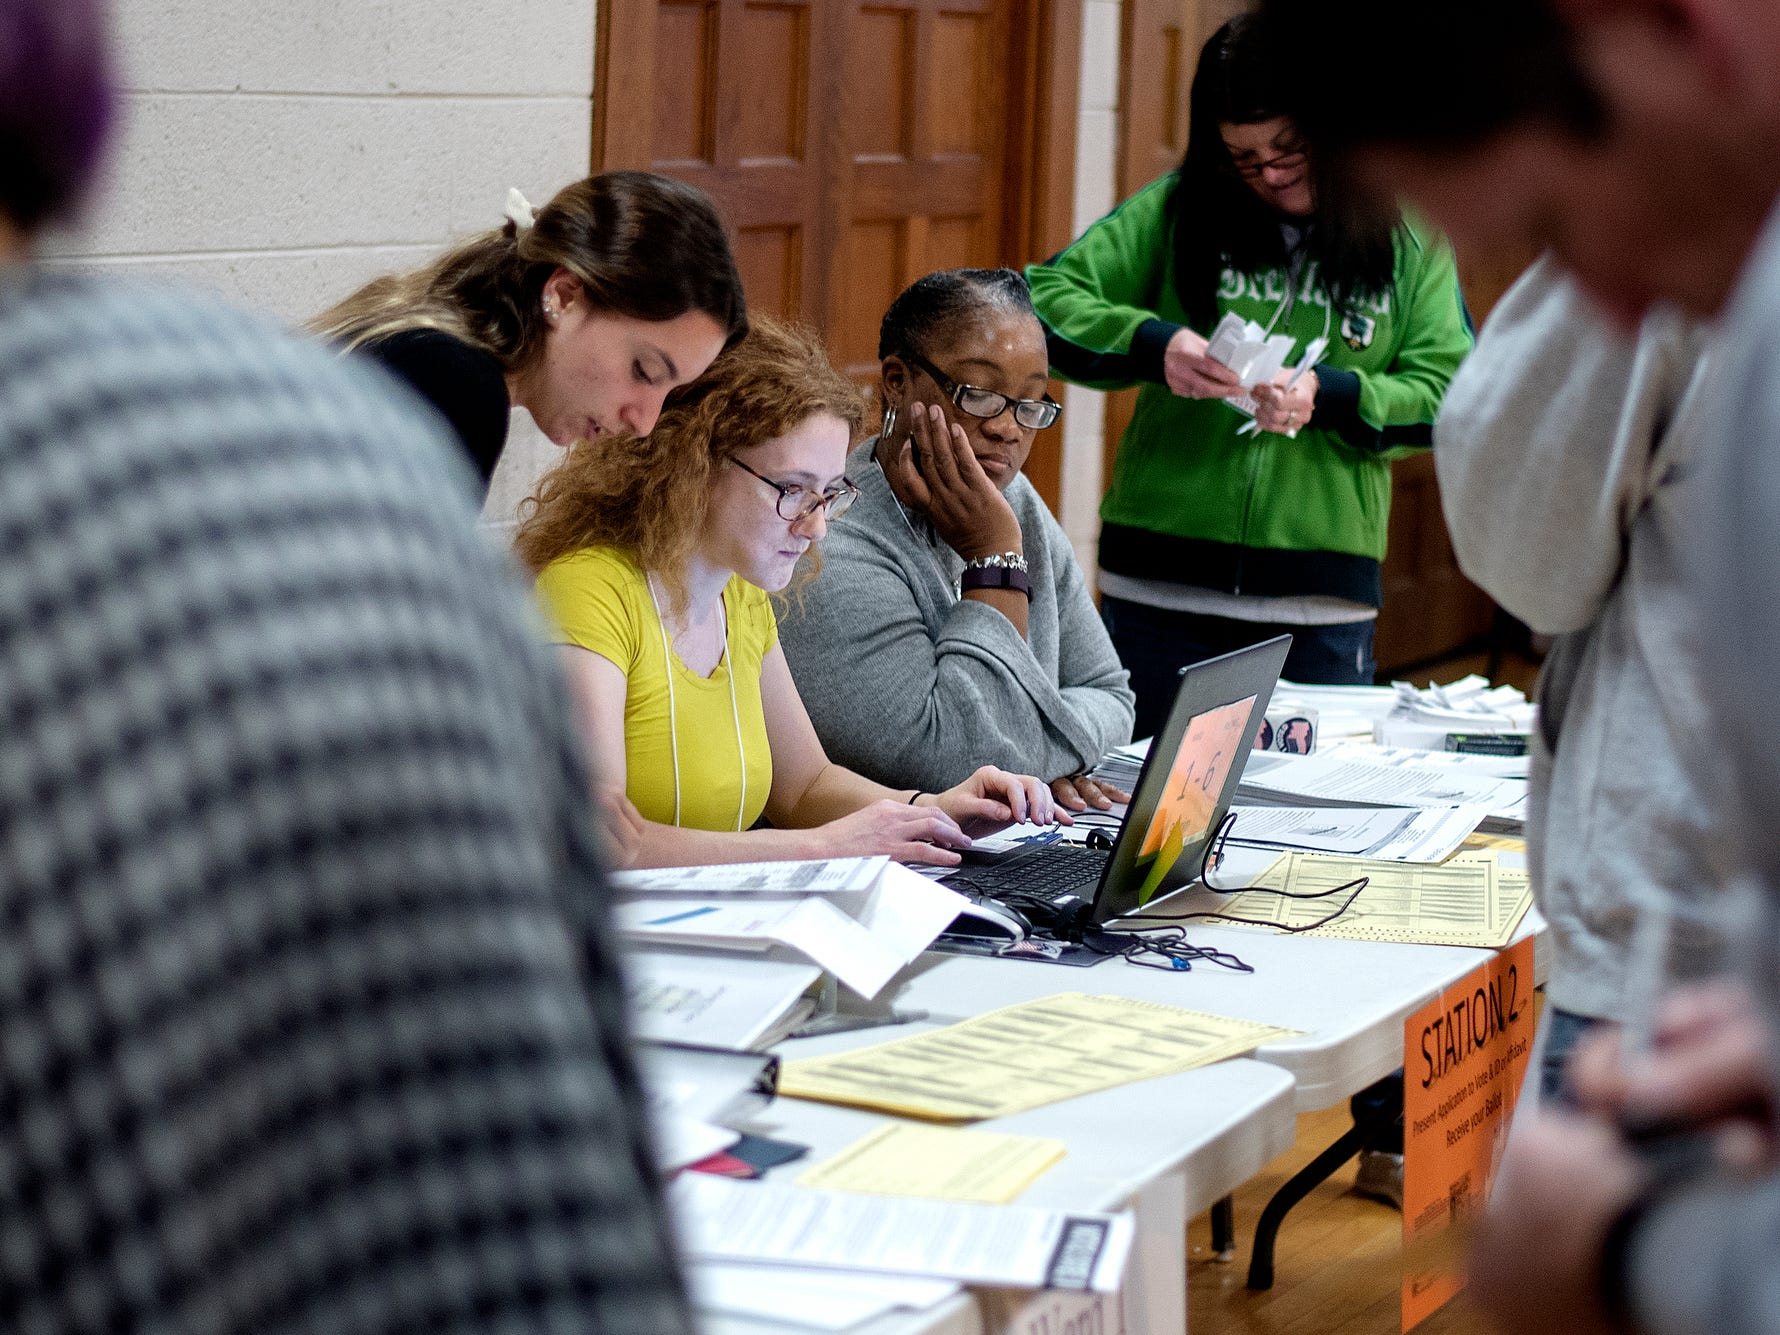 Election workers help voters register on Tuesday, Nov. 6, 2018, at Pilgrim Congregational United Church of Christ in Lansing.